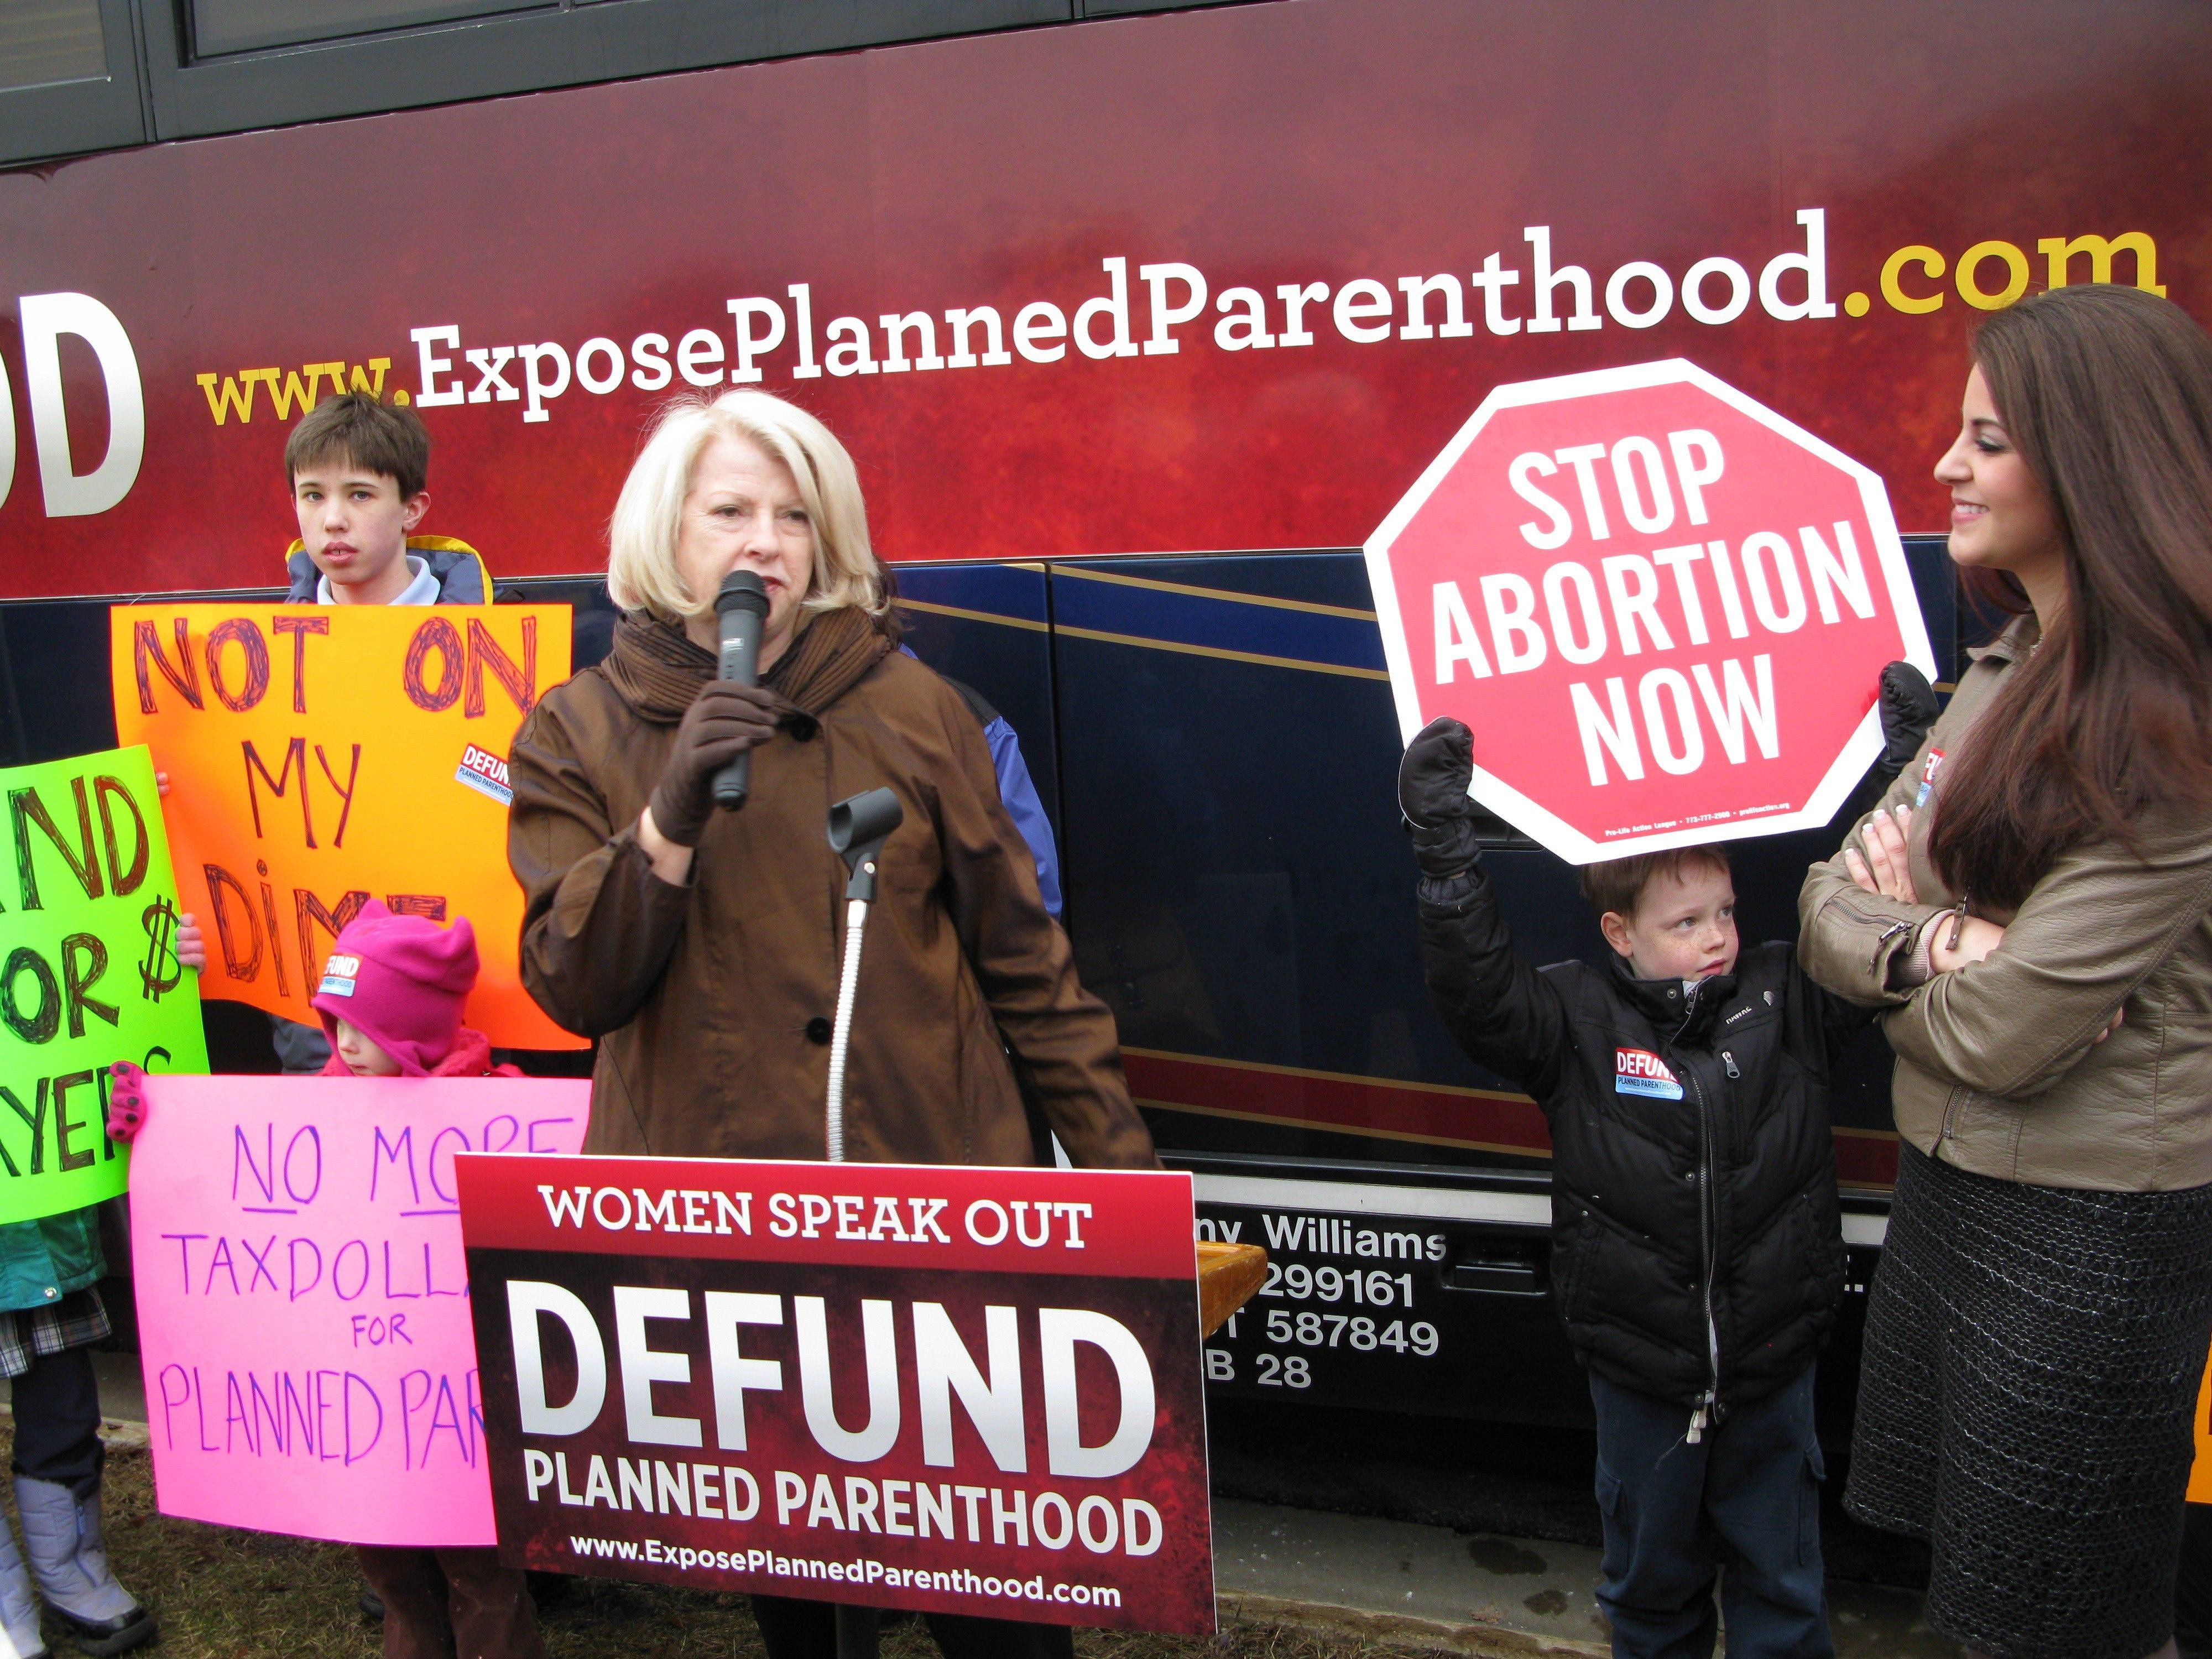 Former Colorado Congresswoman Marilyn Musgrave, left, led a group of abotrion opponents in speaking Monday outside Congressman Randy Hultgren's Geneva office. Among other things, Musgrave said Planned Parenthood engages in aiding and abetting sex trafficking.